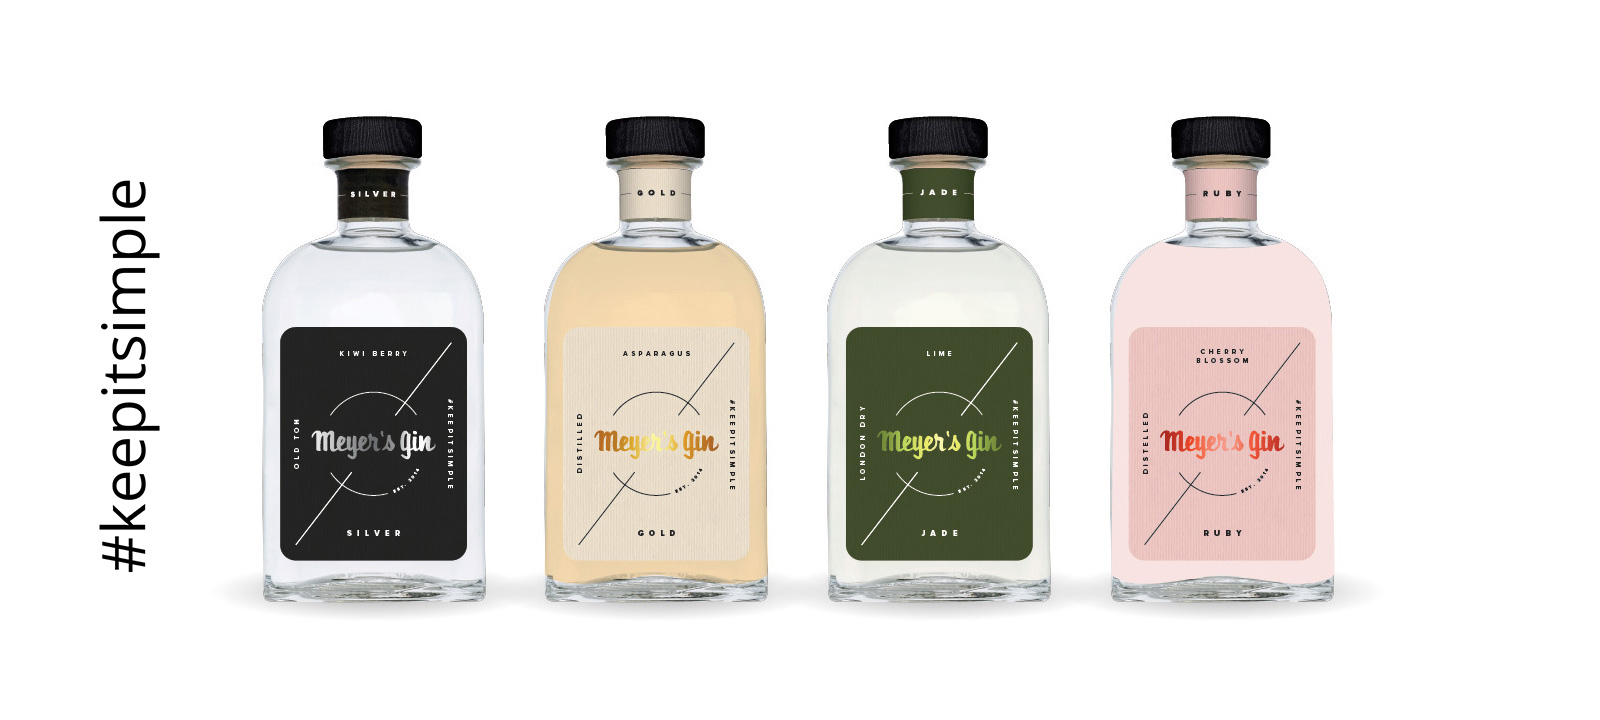 Meyer's Gin Home | Discover Our Gins | - Meyer's Gin